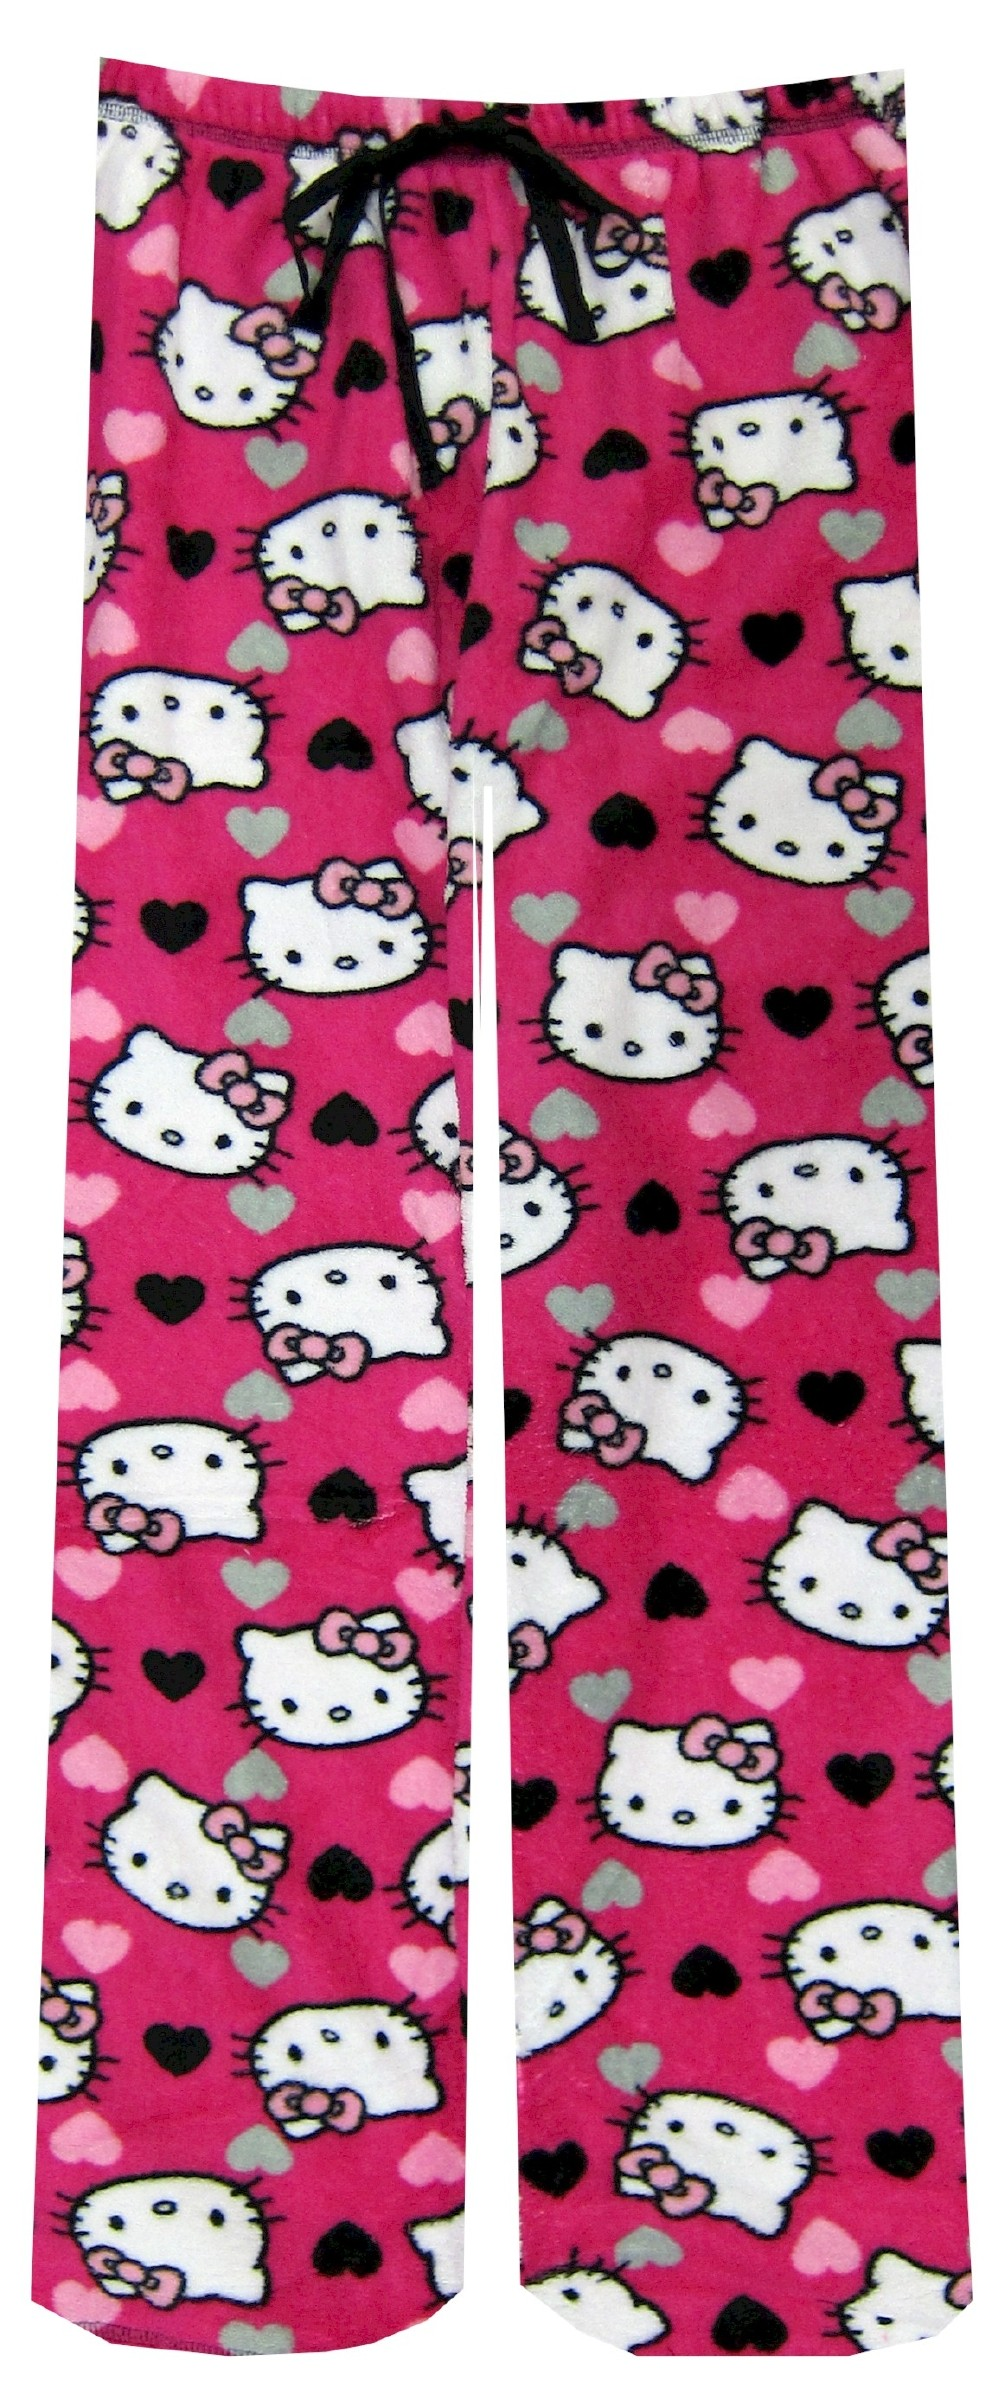 d9c42ee0f Hello Kitty Sleepwear, Loungewear and Pajamas for Women